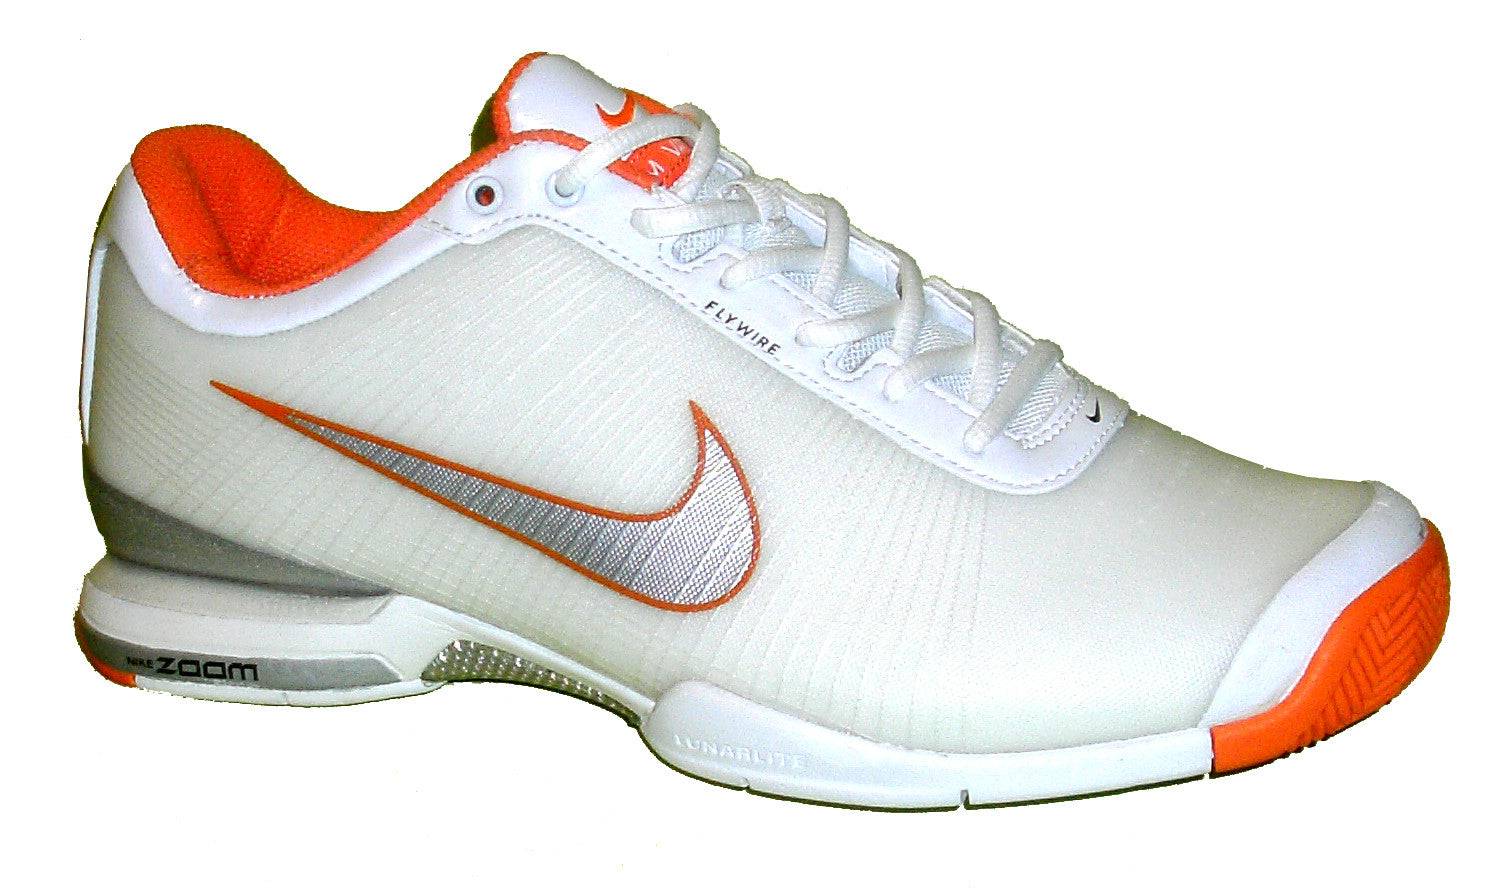 Nike Air Vapor VI Tour White/Orange Roger Federer RF Nadal Men Tennis Shoes 9.5